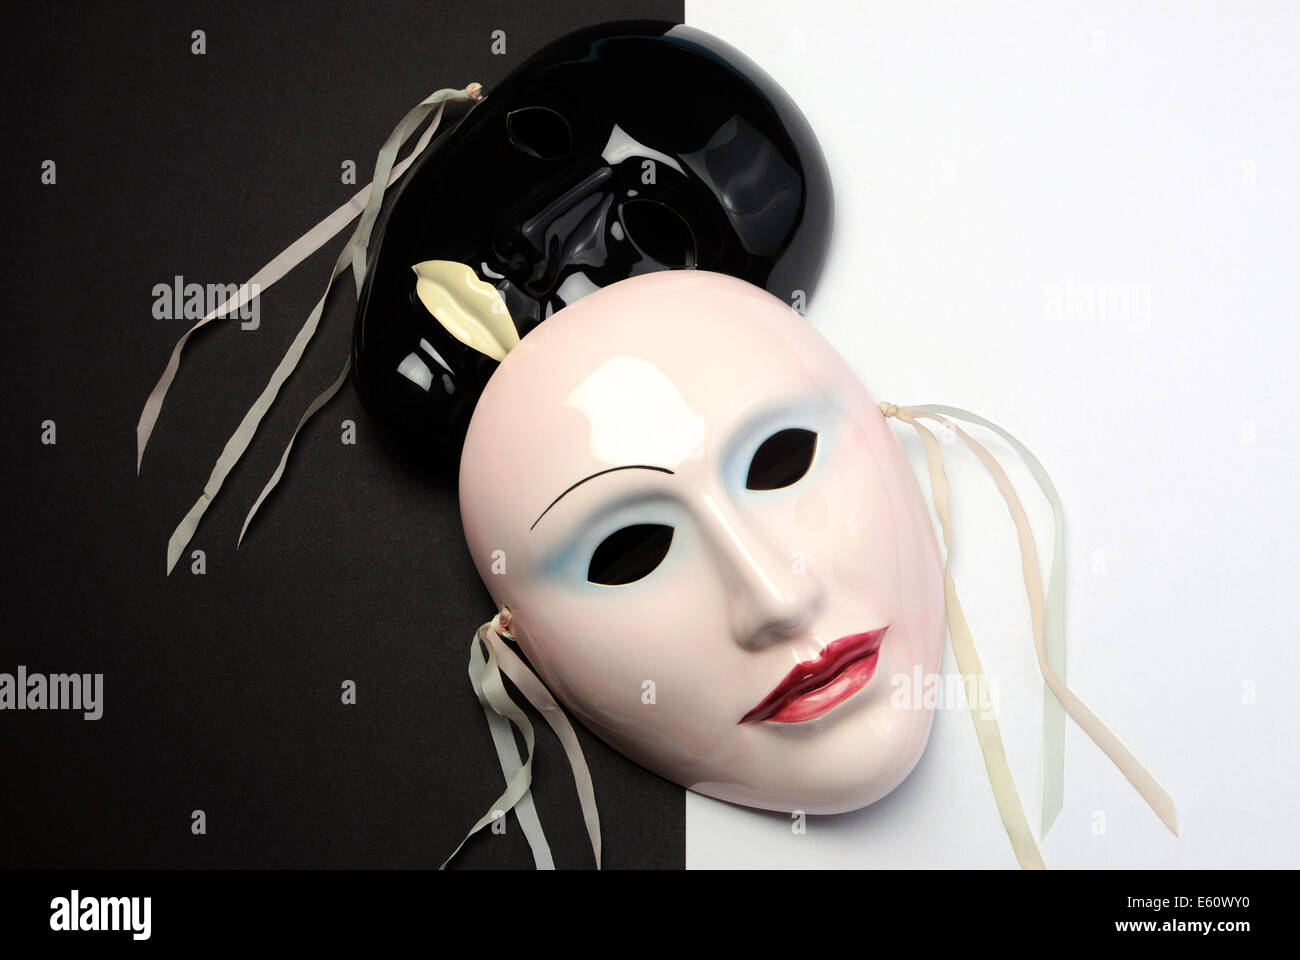 Black and white theme ceramic masks for acting, performance or theater concept. - Stock Image